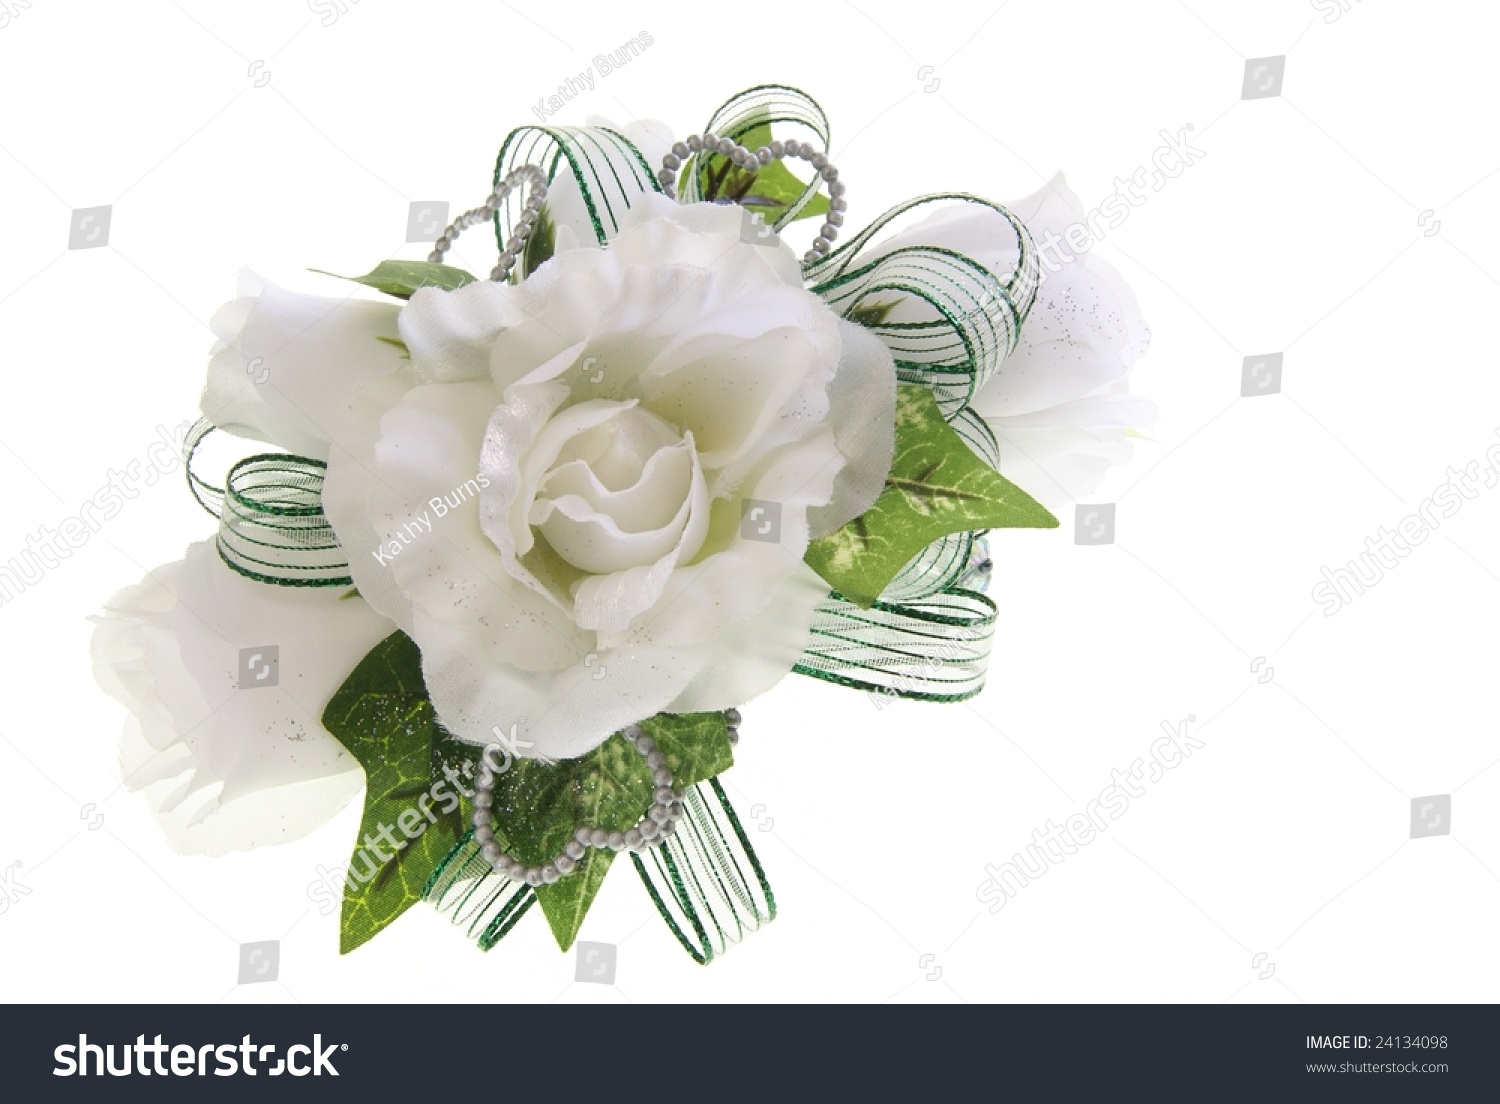 White Fabric Rose Flower Wrist Corsage Stock Photo Download Now